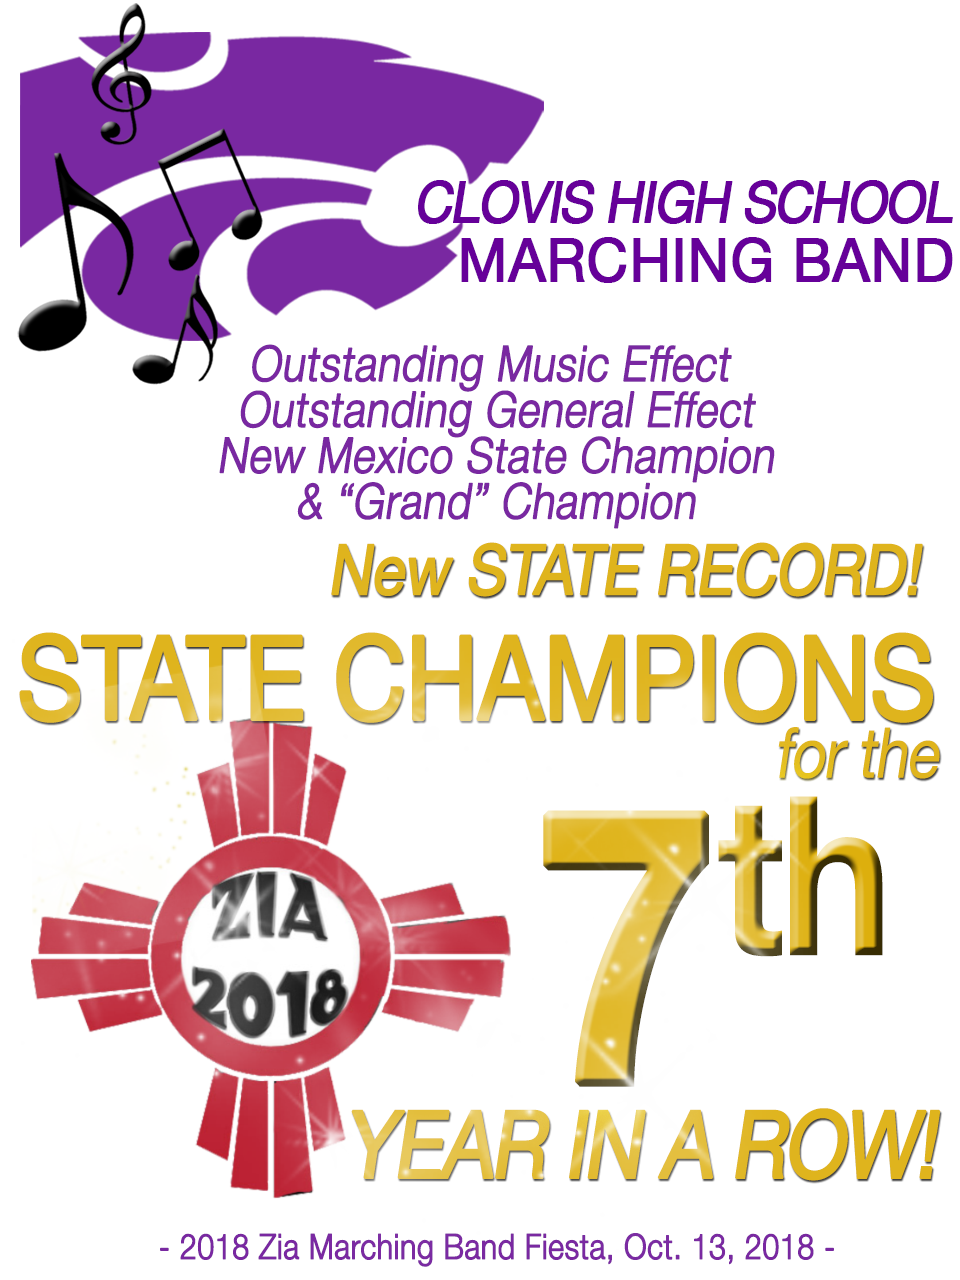 Image of text announcing Wildcat Marching Band championship win